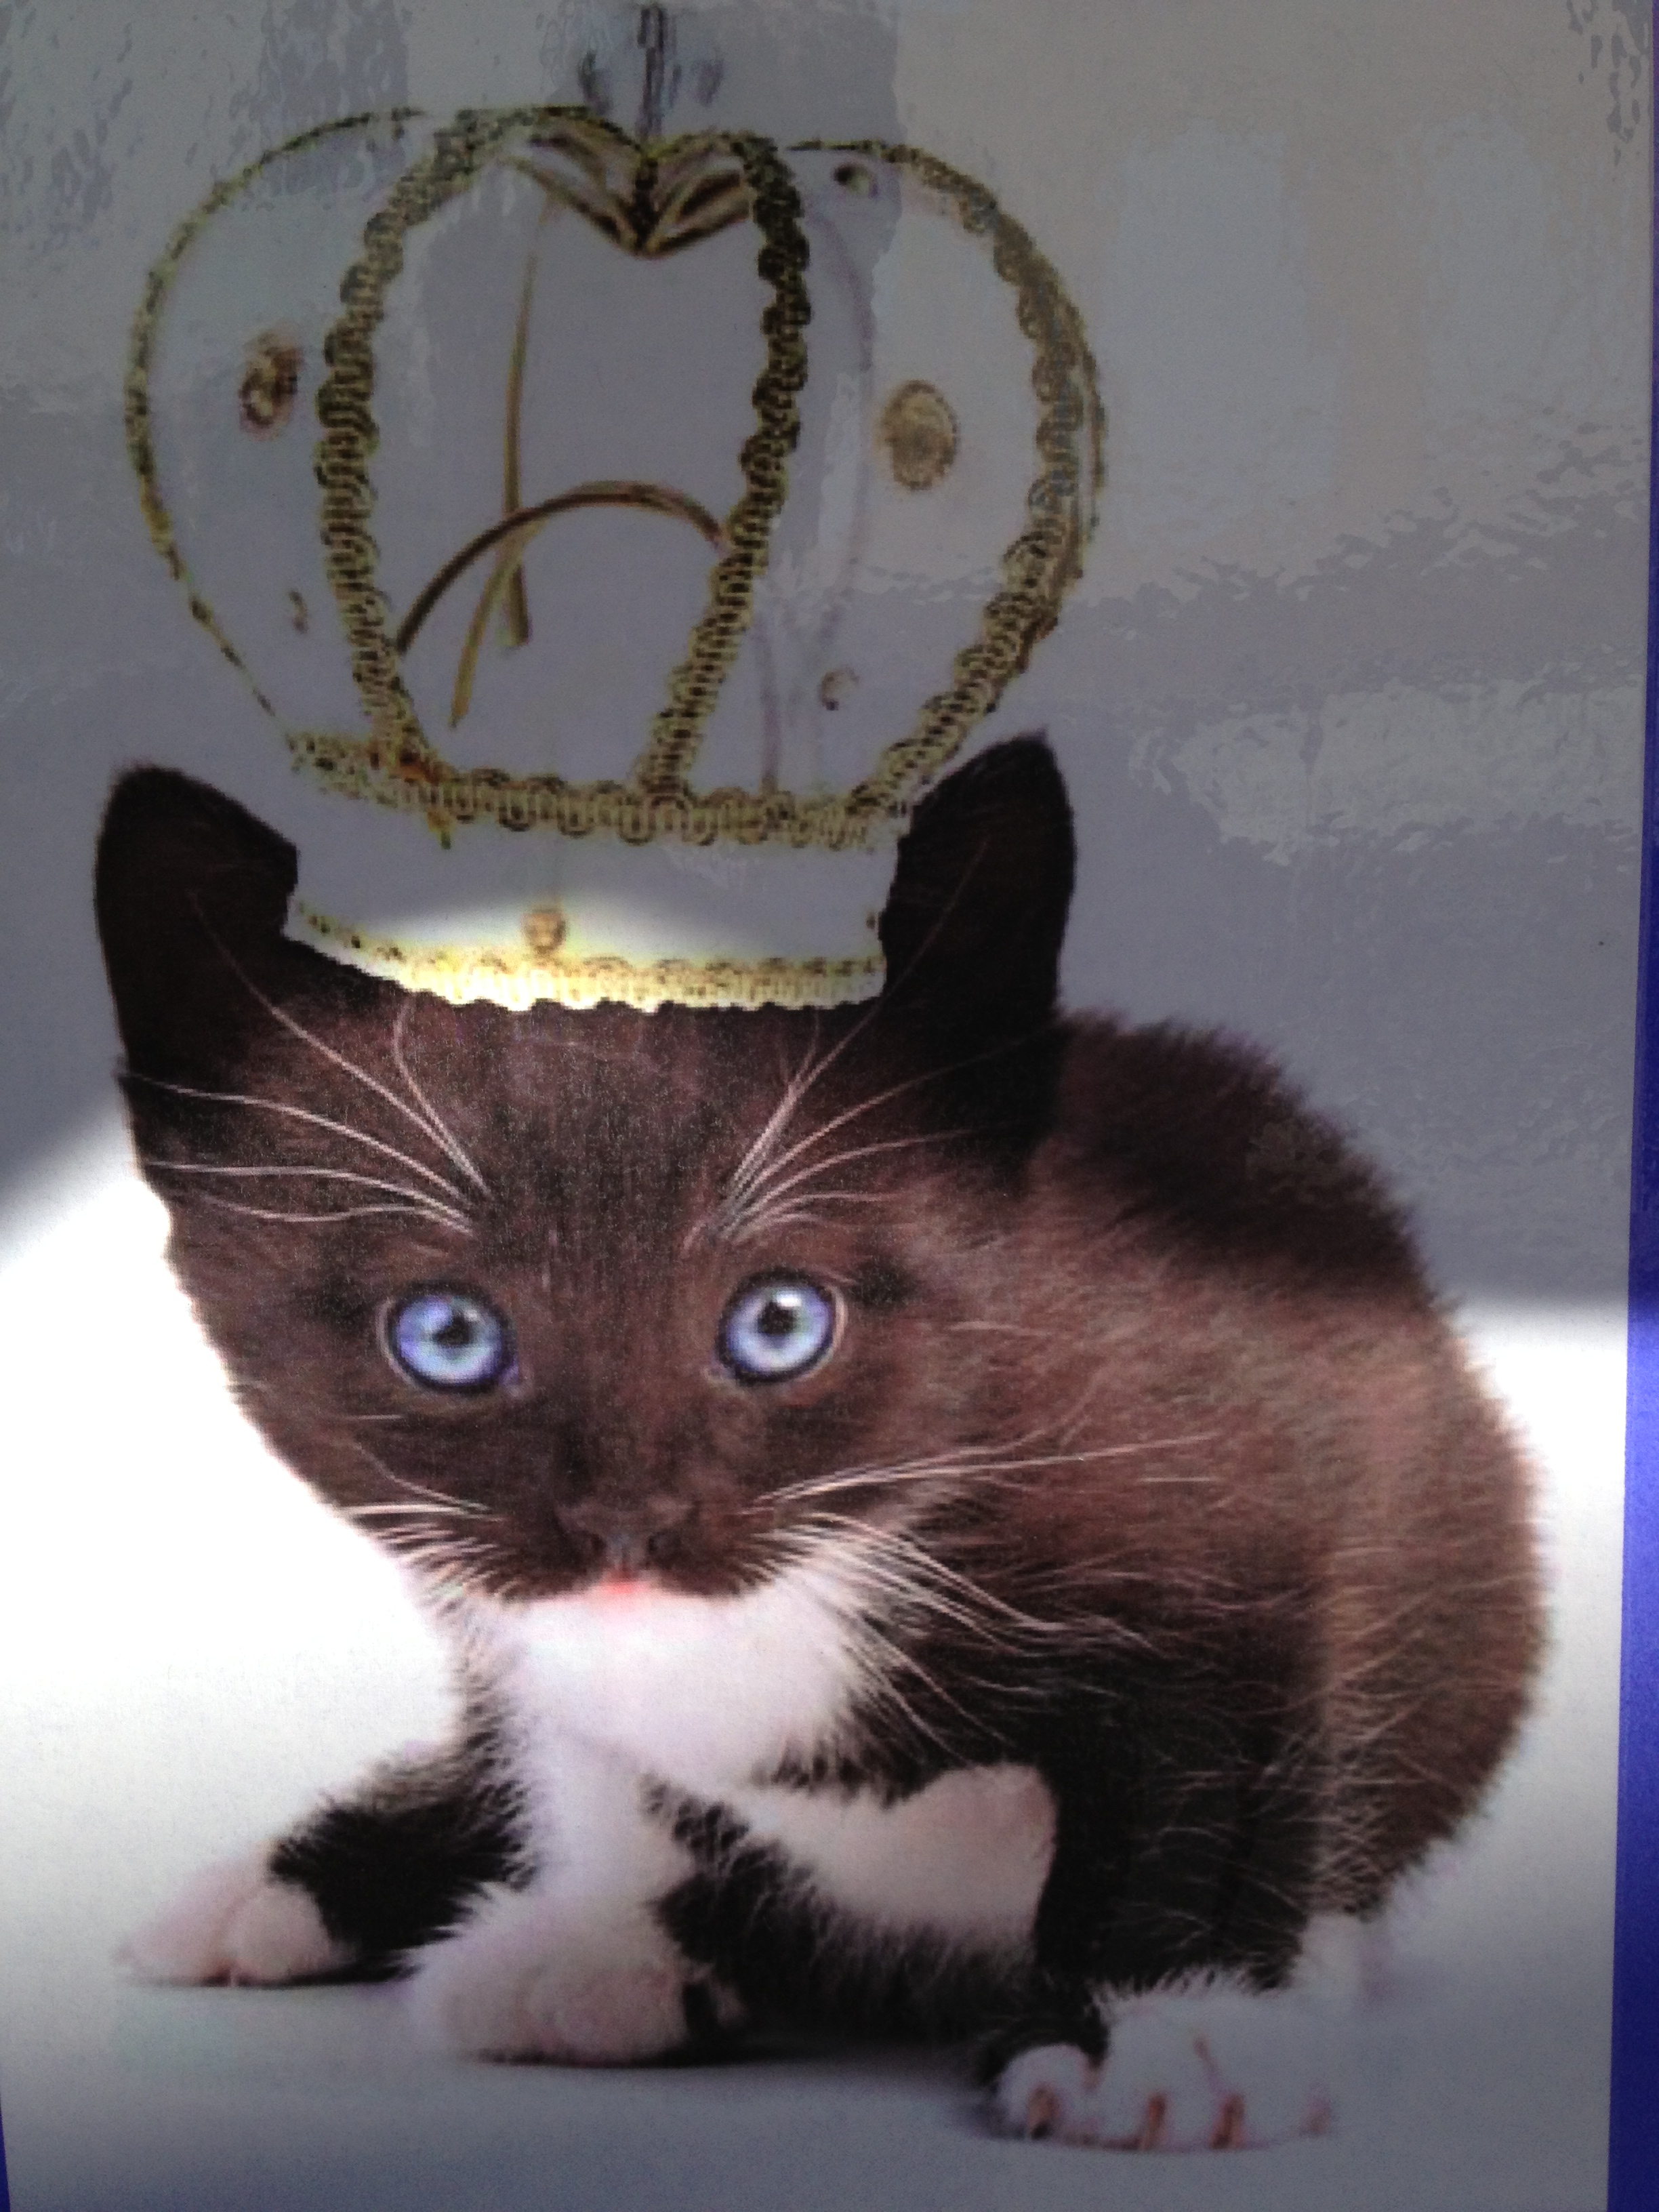 Ask yourself, would you have treated this kitty as royalty if she hadn't worn a crown?